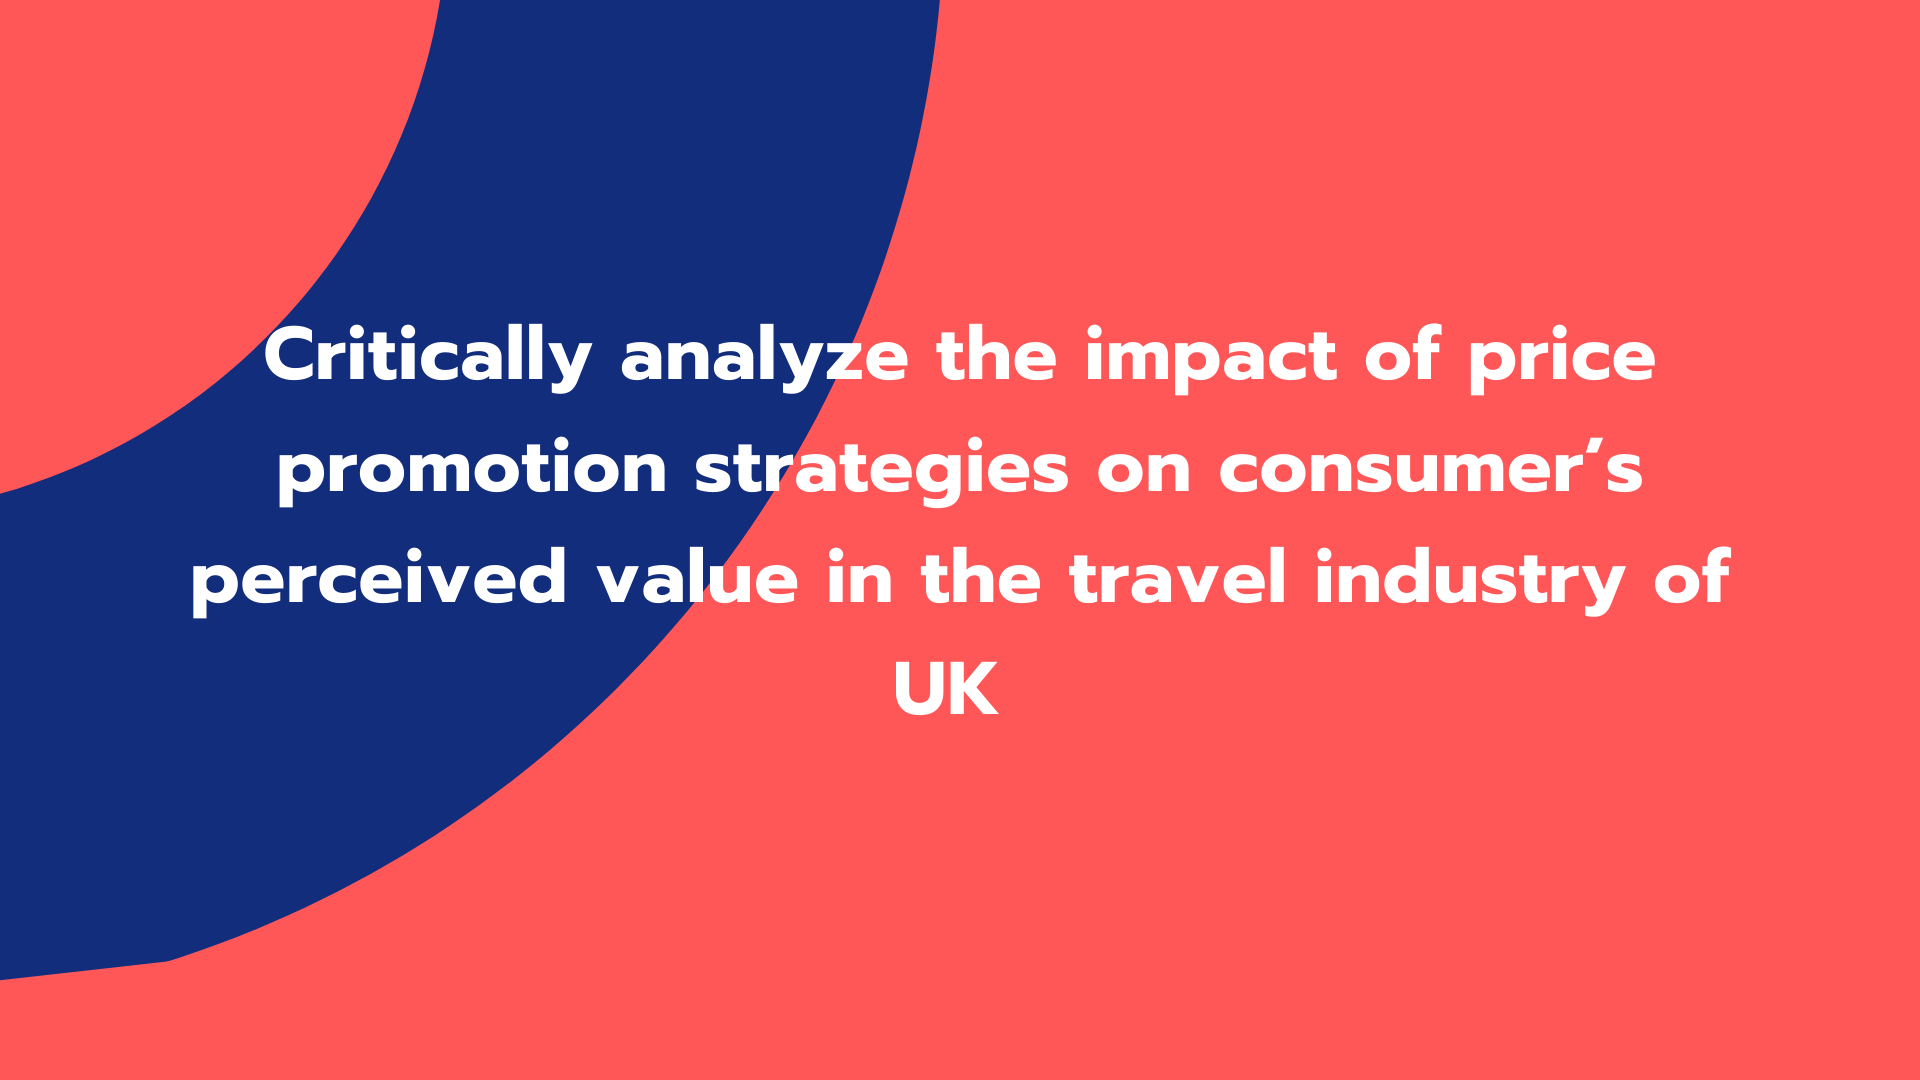 Critically analyze the impact of price promotion strategies on consumer's perceived value in the travel industry of UK